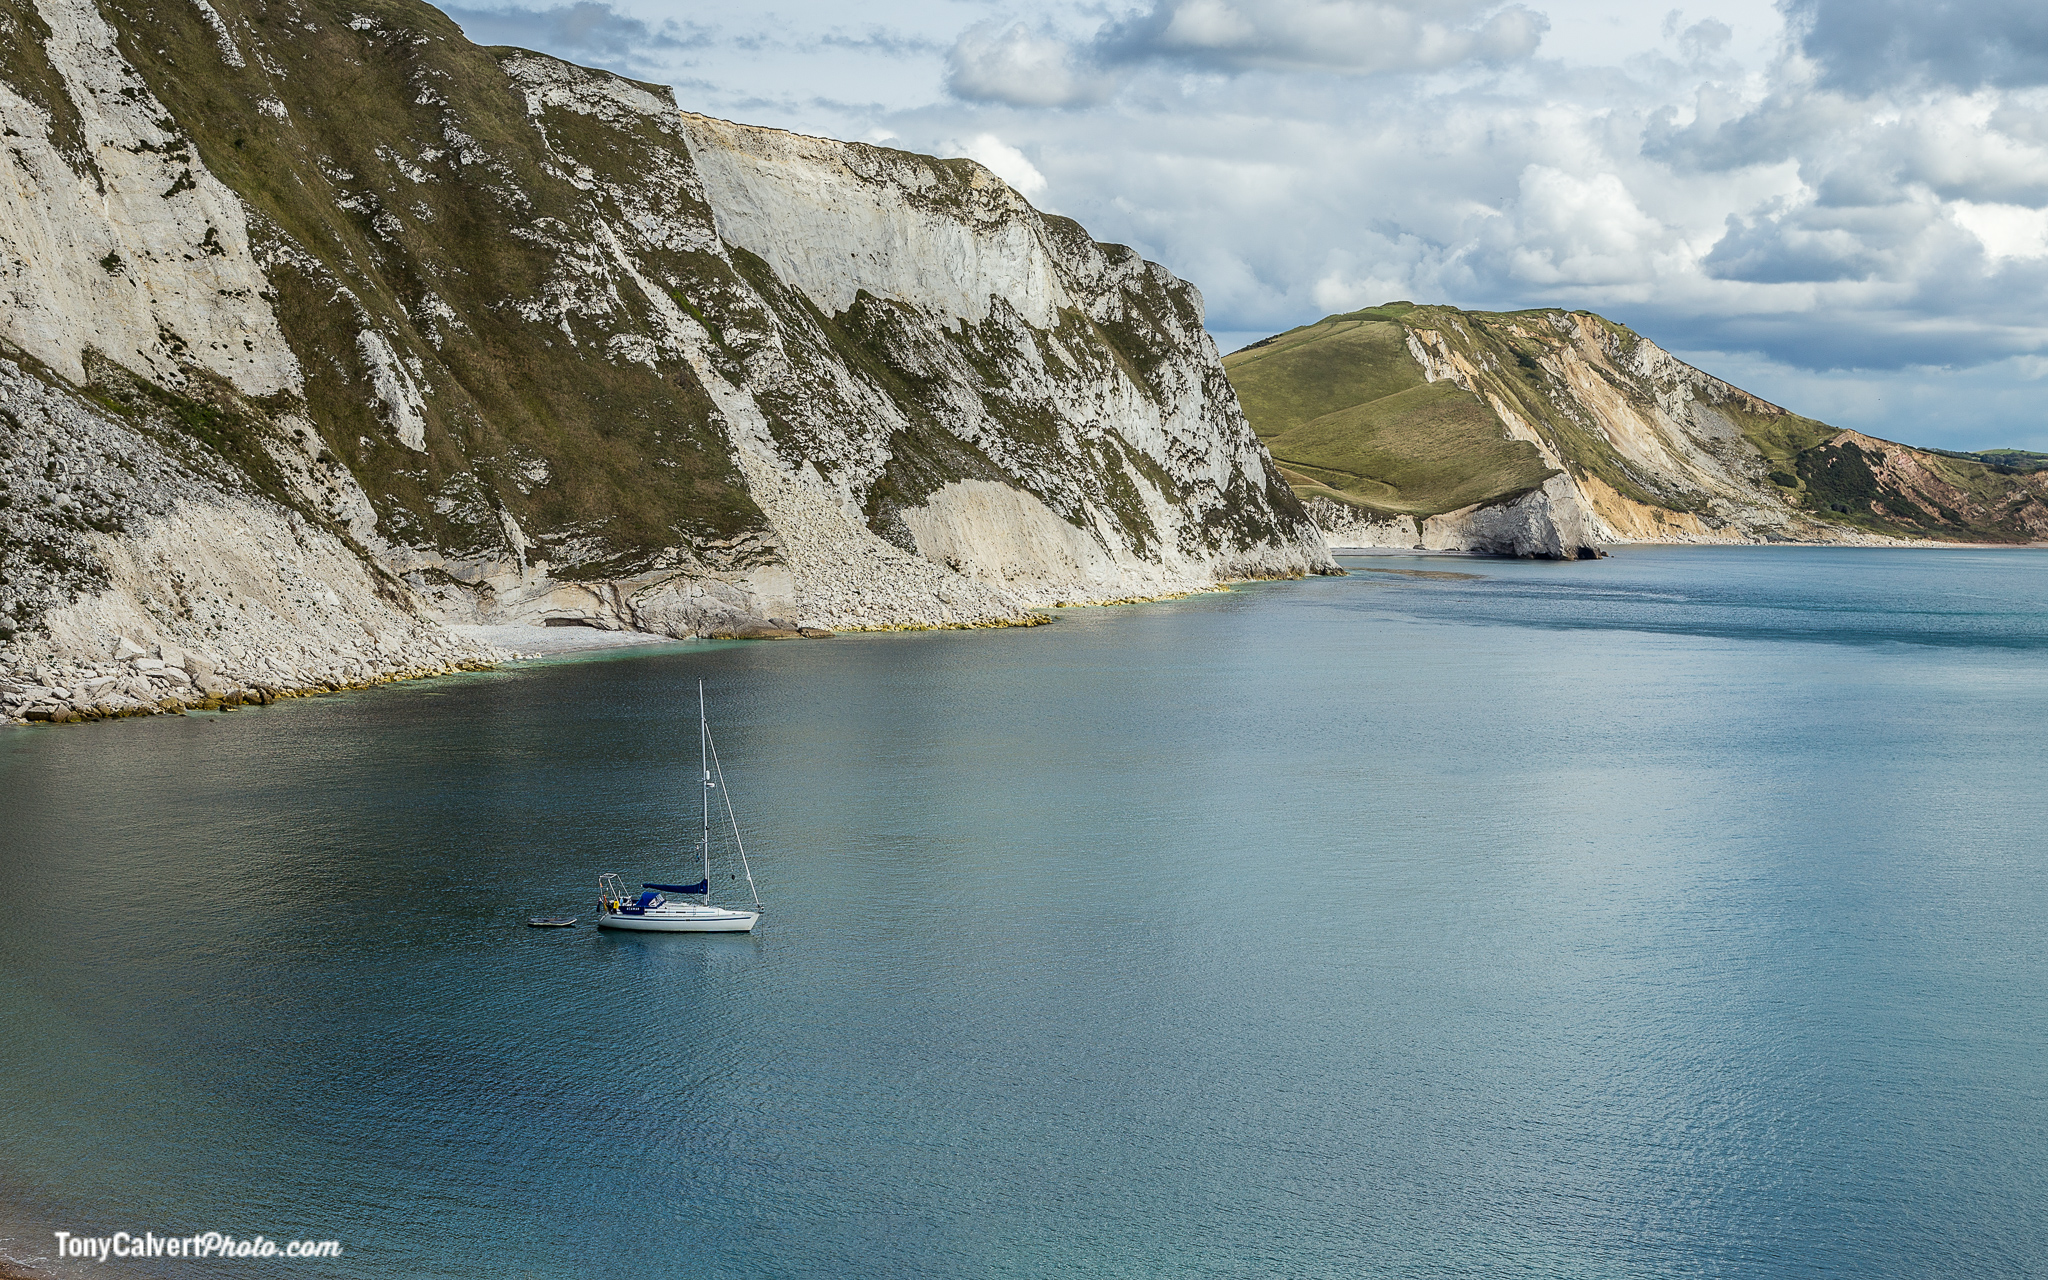 Yacht anchored on the Dorset Coast